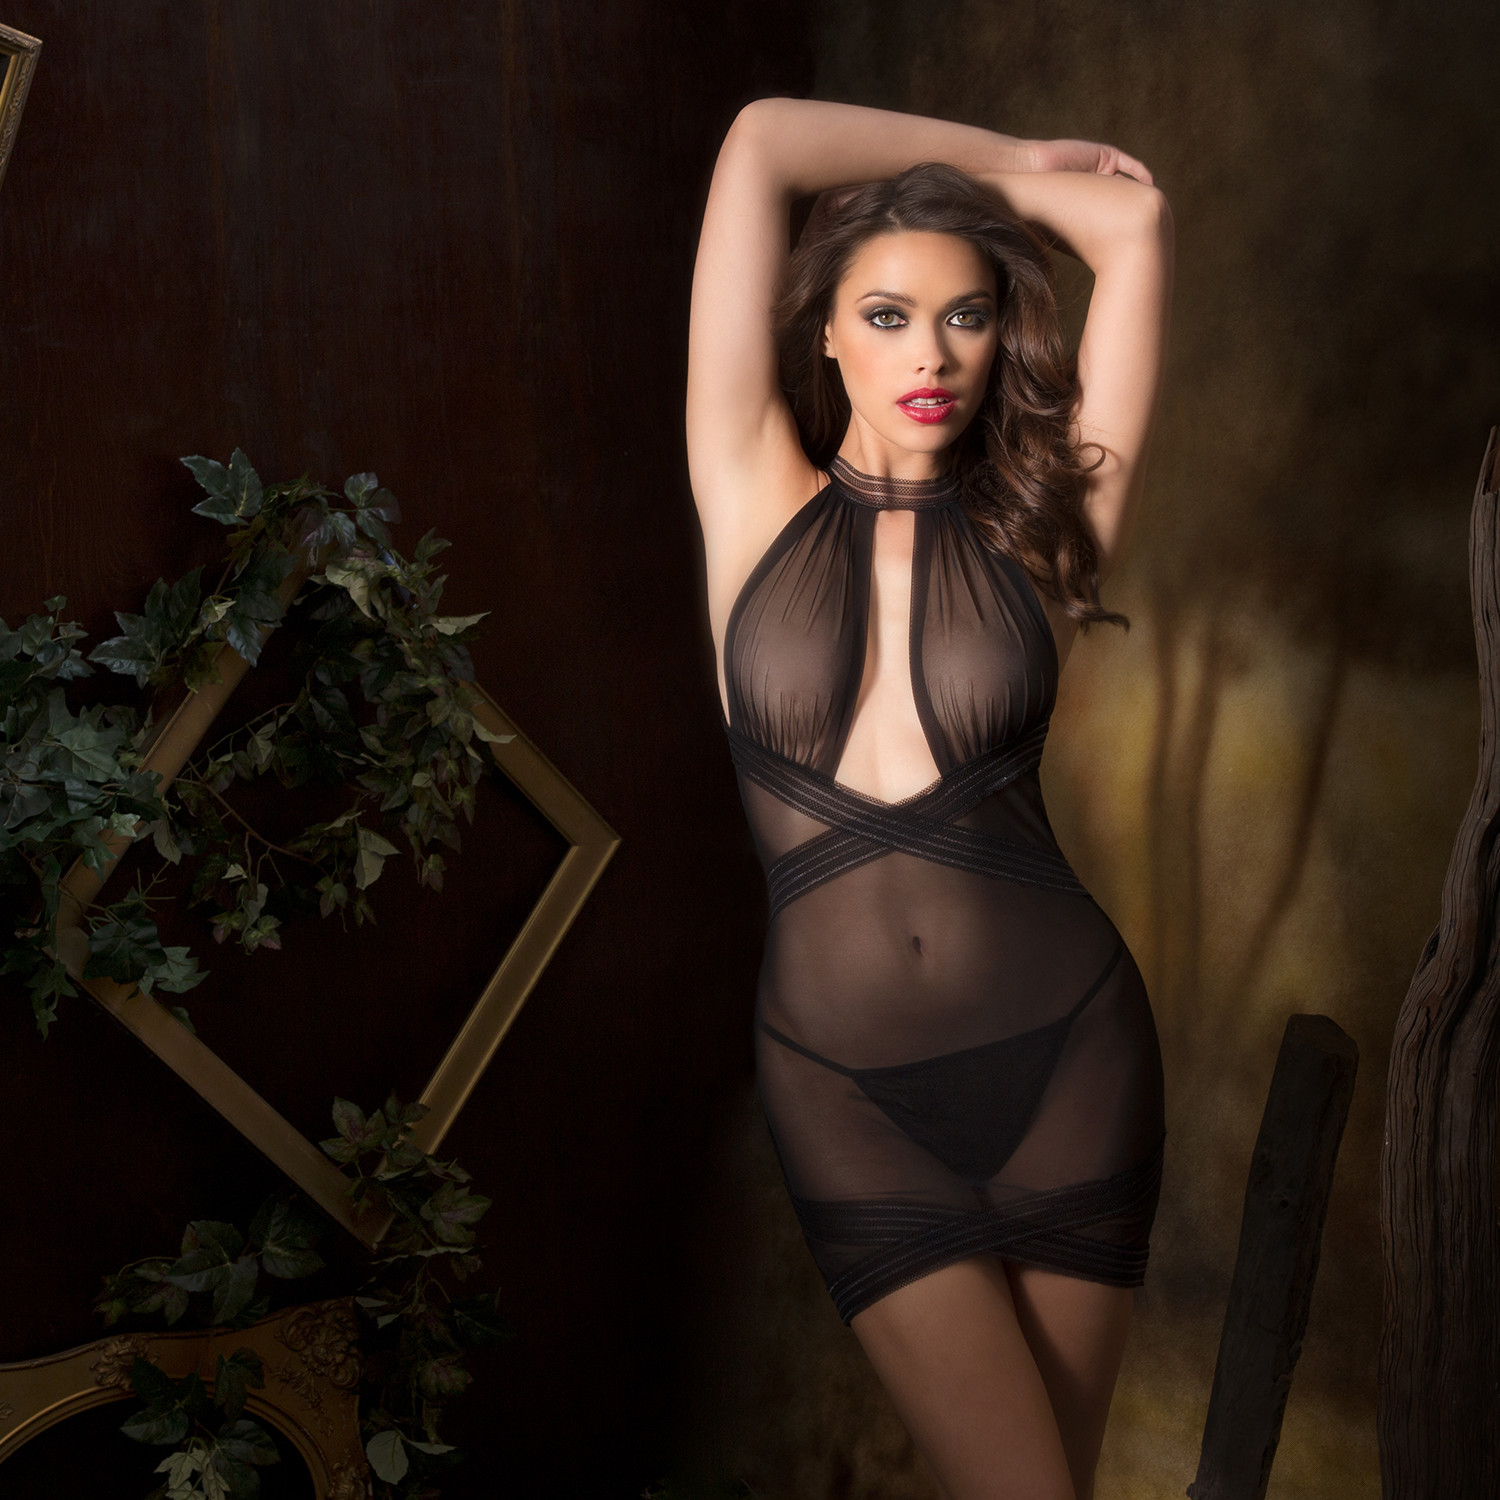 Oh La La Cheri - Intimate Apparel With French Flair - Touch of Modern